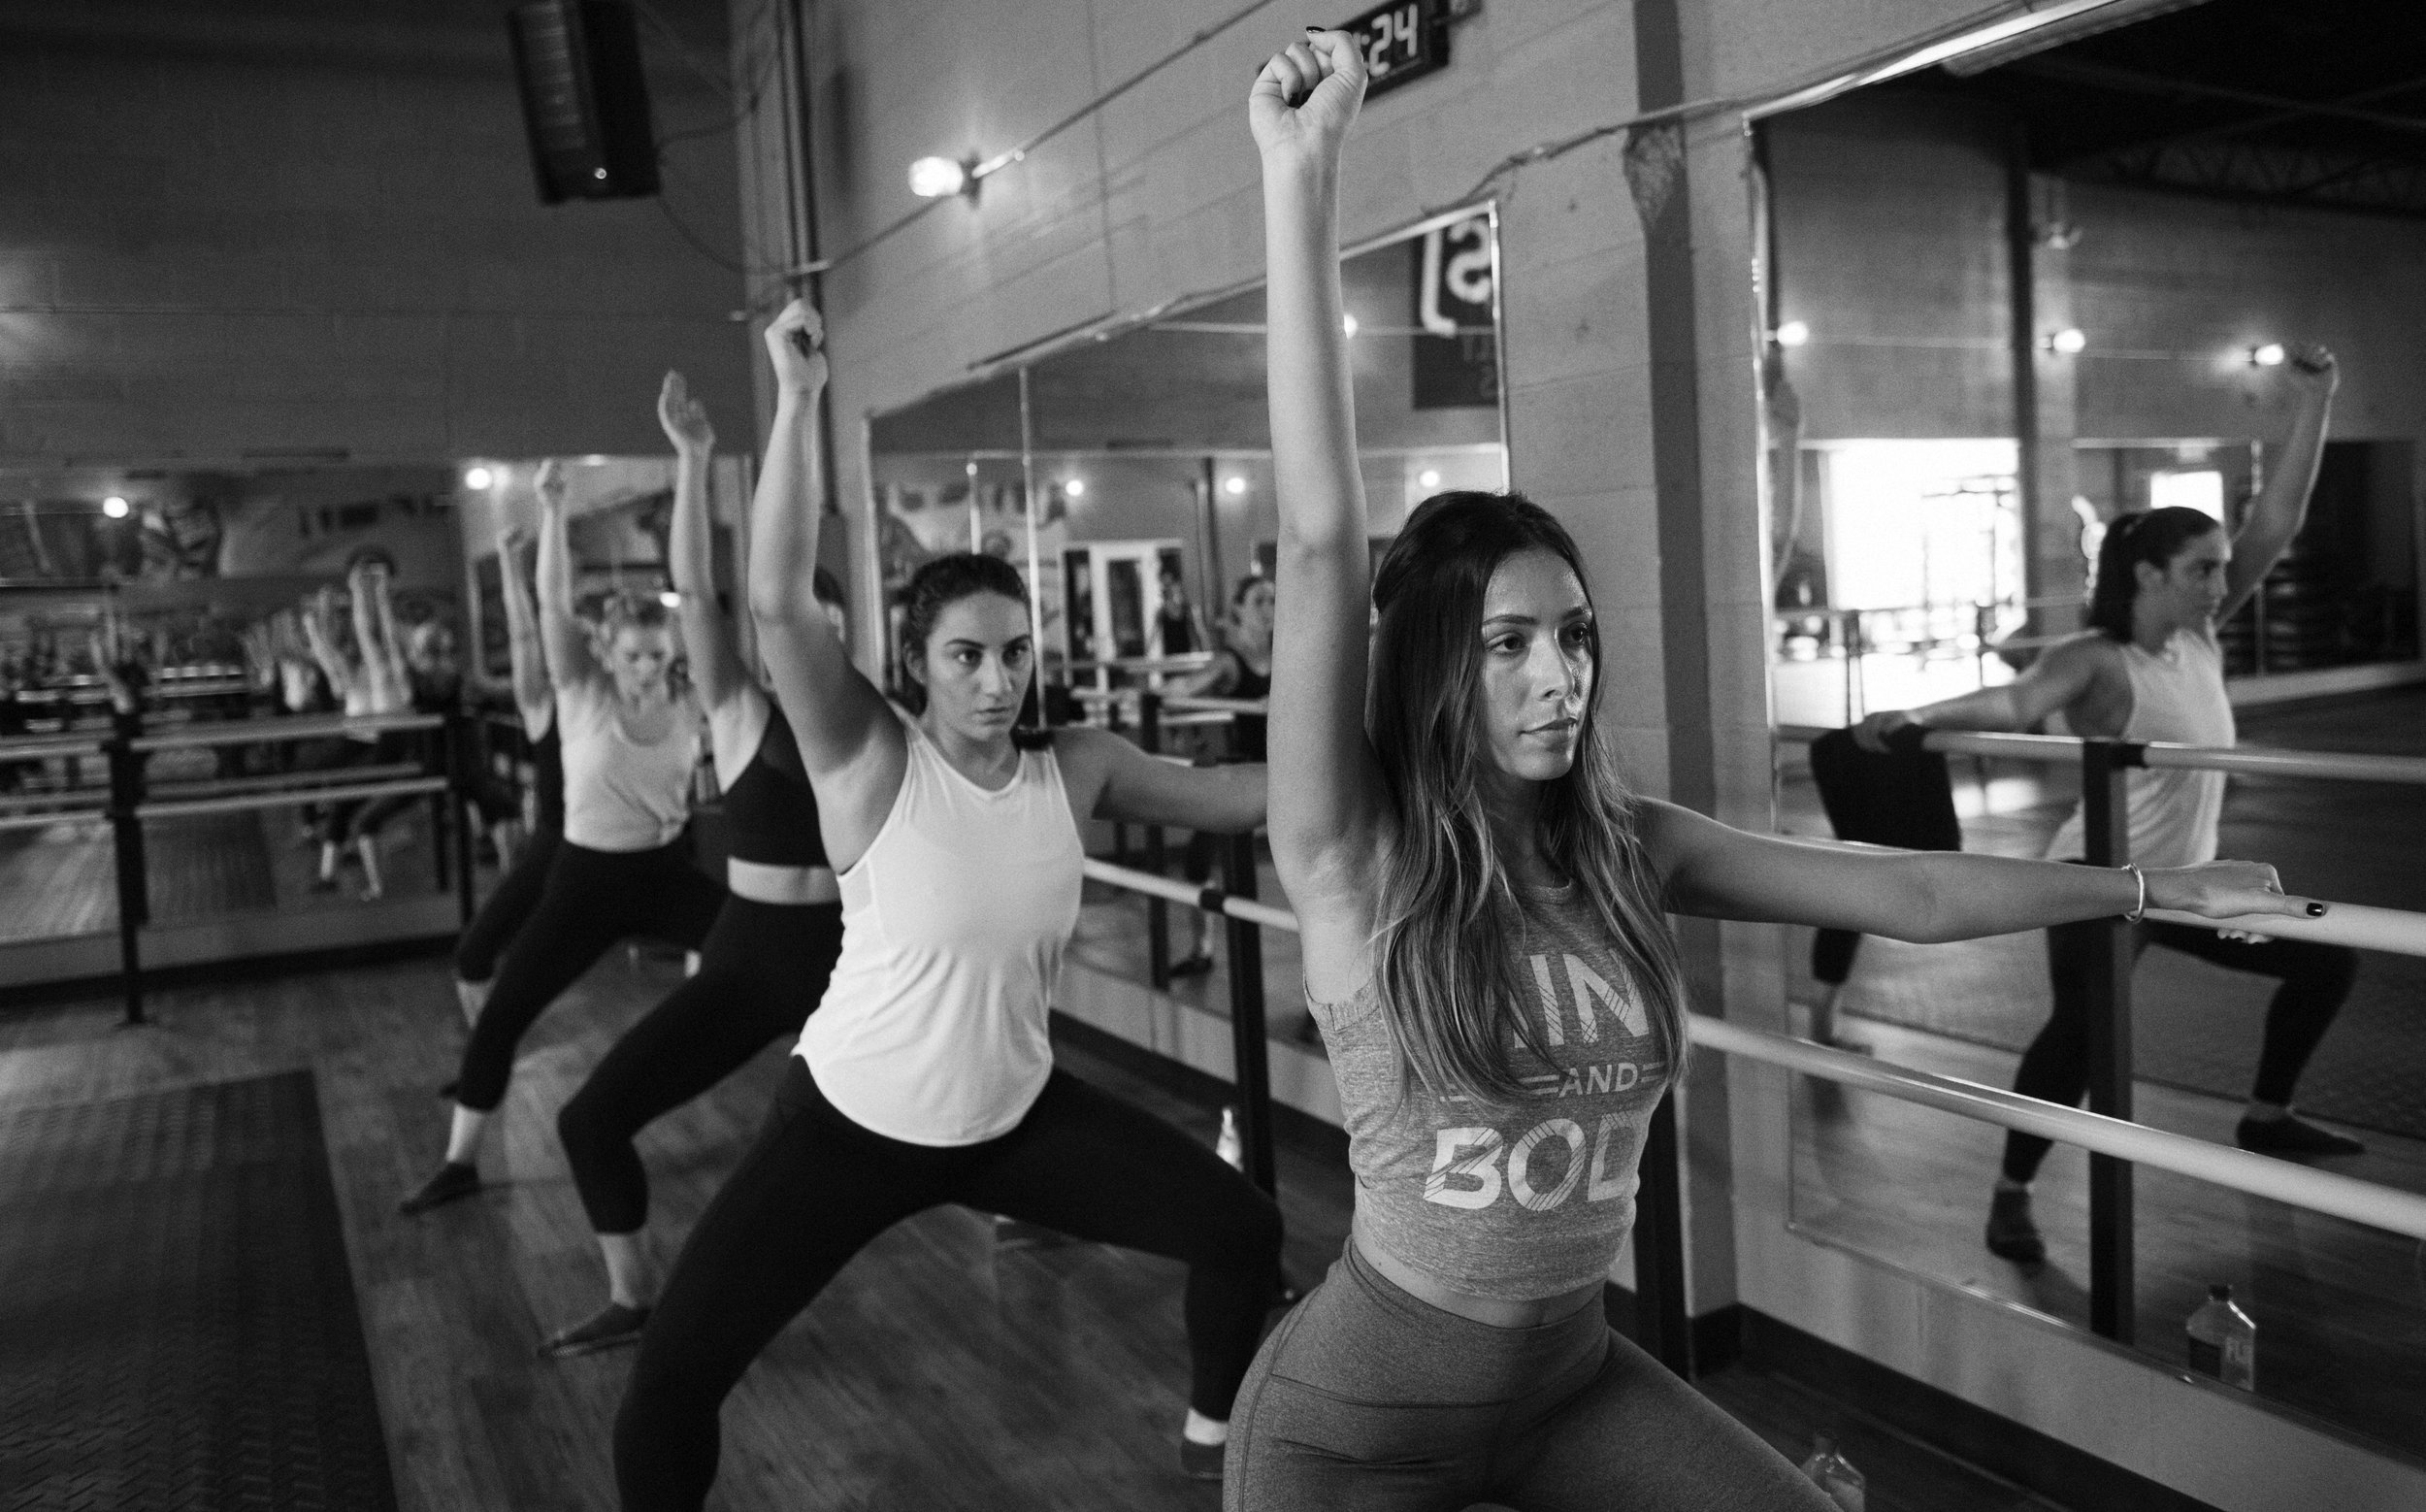 The Beginner - New to group fitness instruction